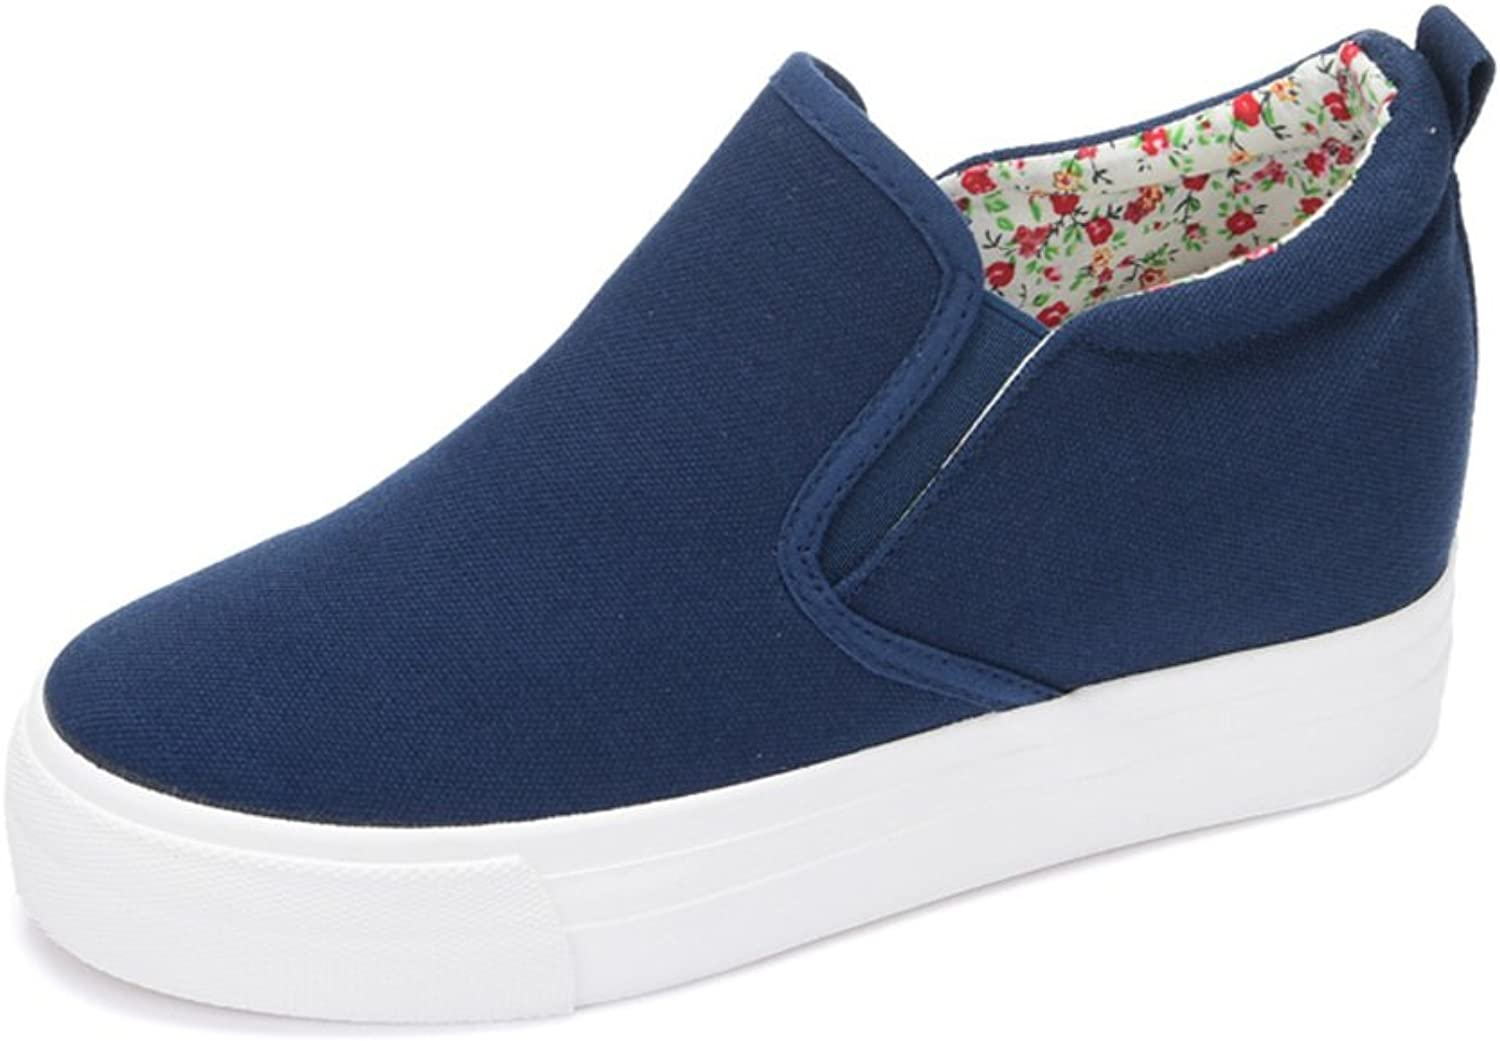 Increased within the canvas shoes in summer and autumn thick crust Foot muffin Ms. casual shoes Carrefour